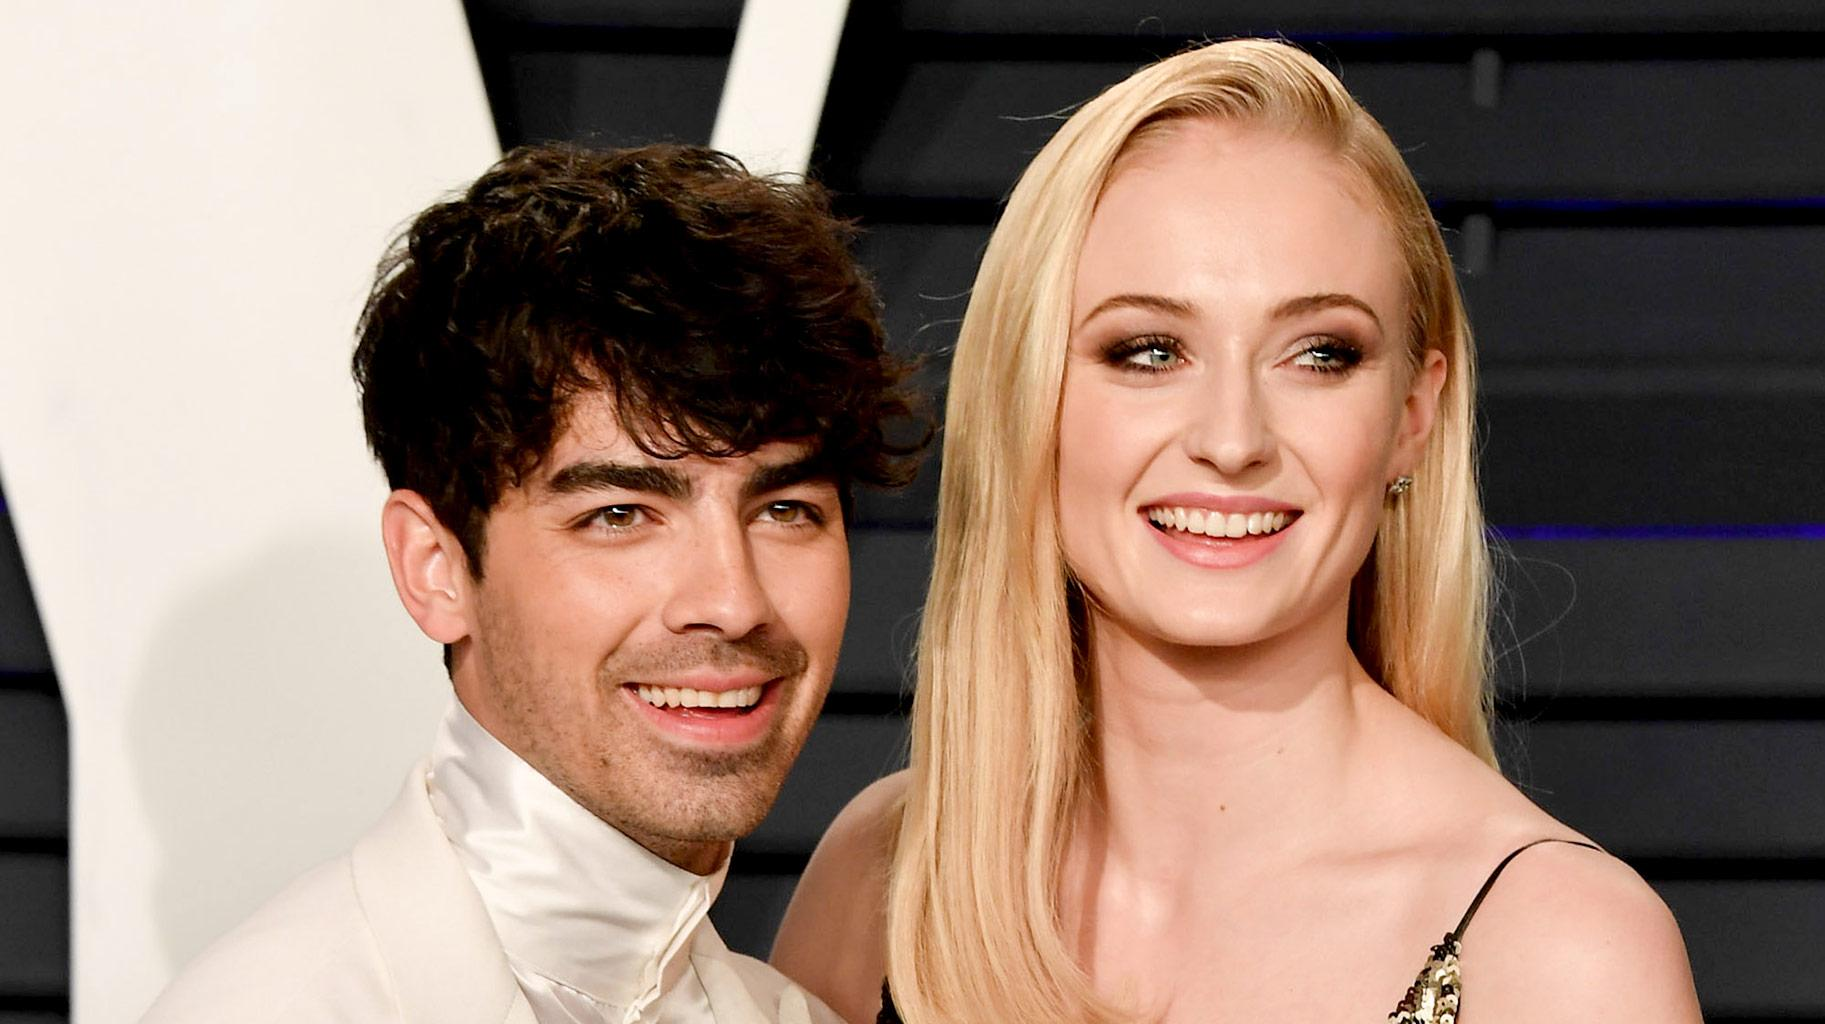 Sophie Turner And Joe Jonas - Here's Why They UnexpectedlyGot Married In Las Vegas!